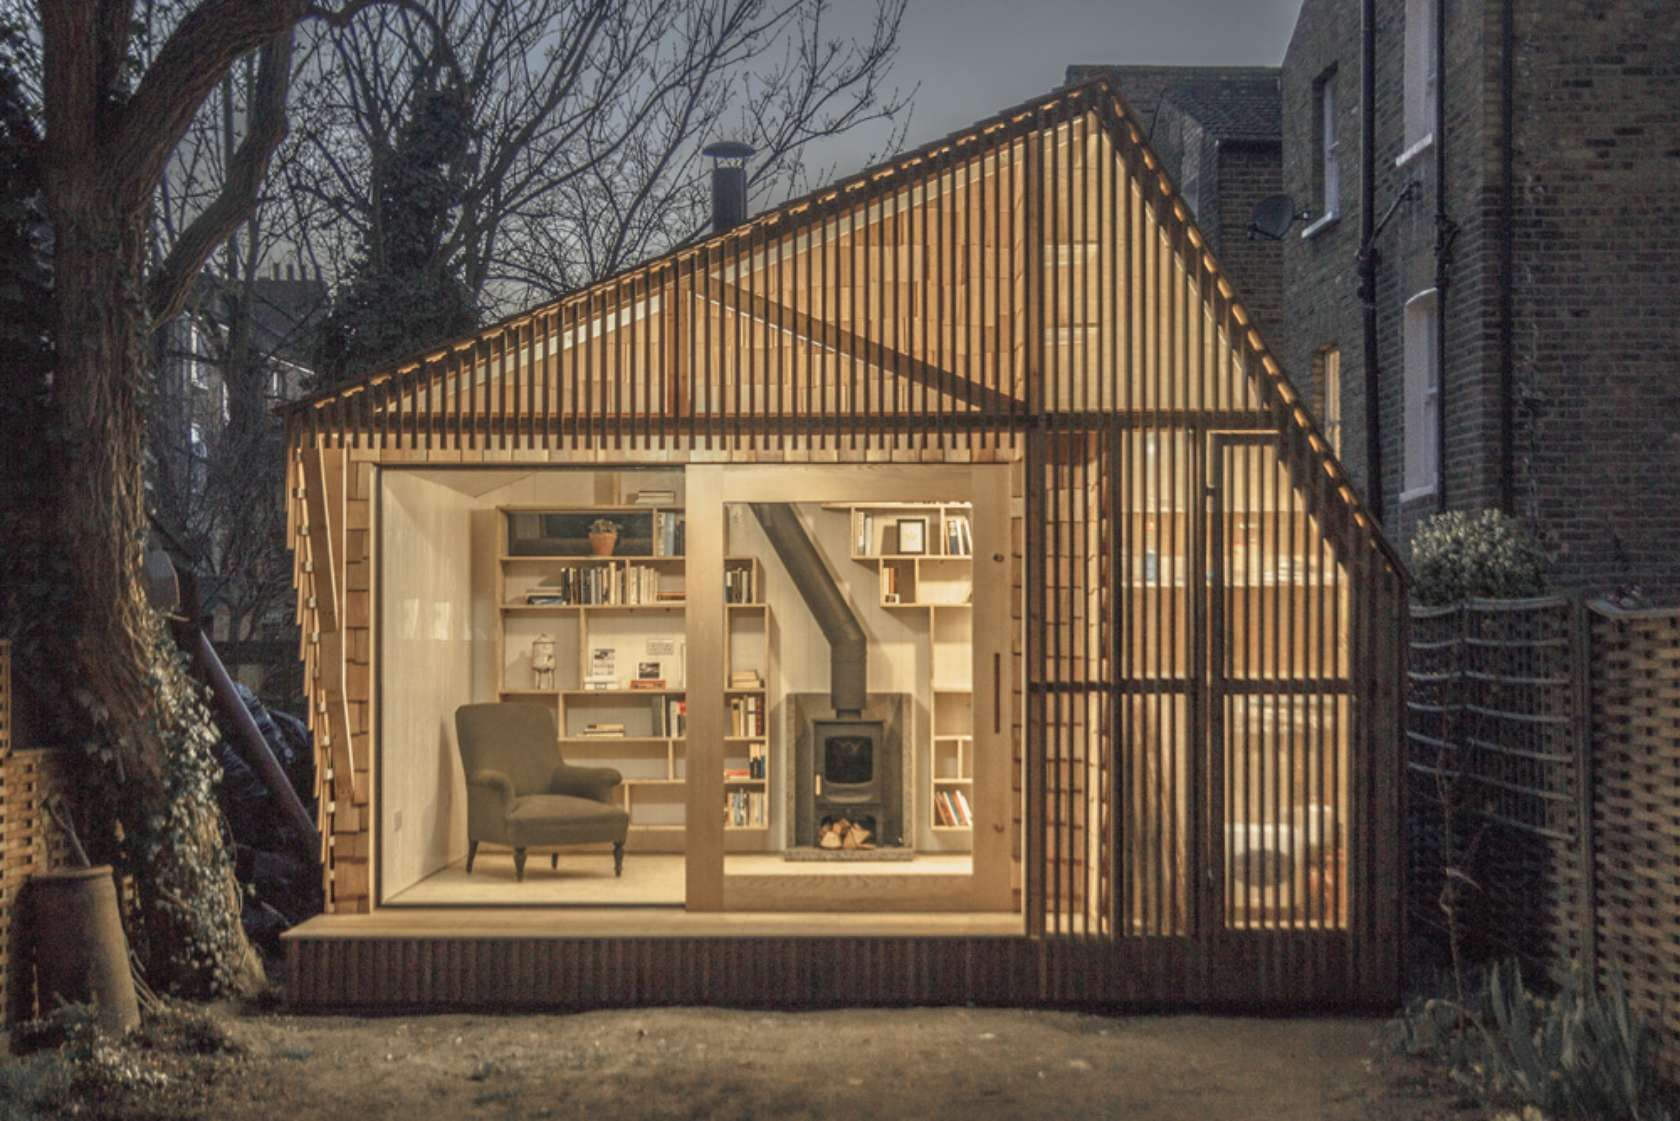 Writer S Shed A Glowing Hut Hides At The Bottom Of The Garden Backyard Studio Garden Studio Architecture